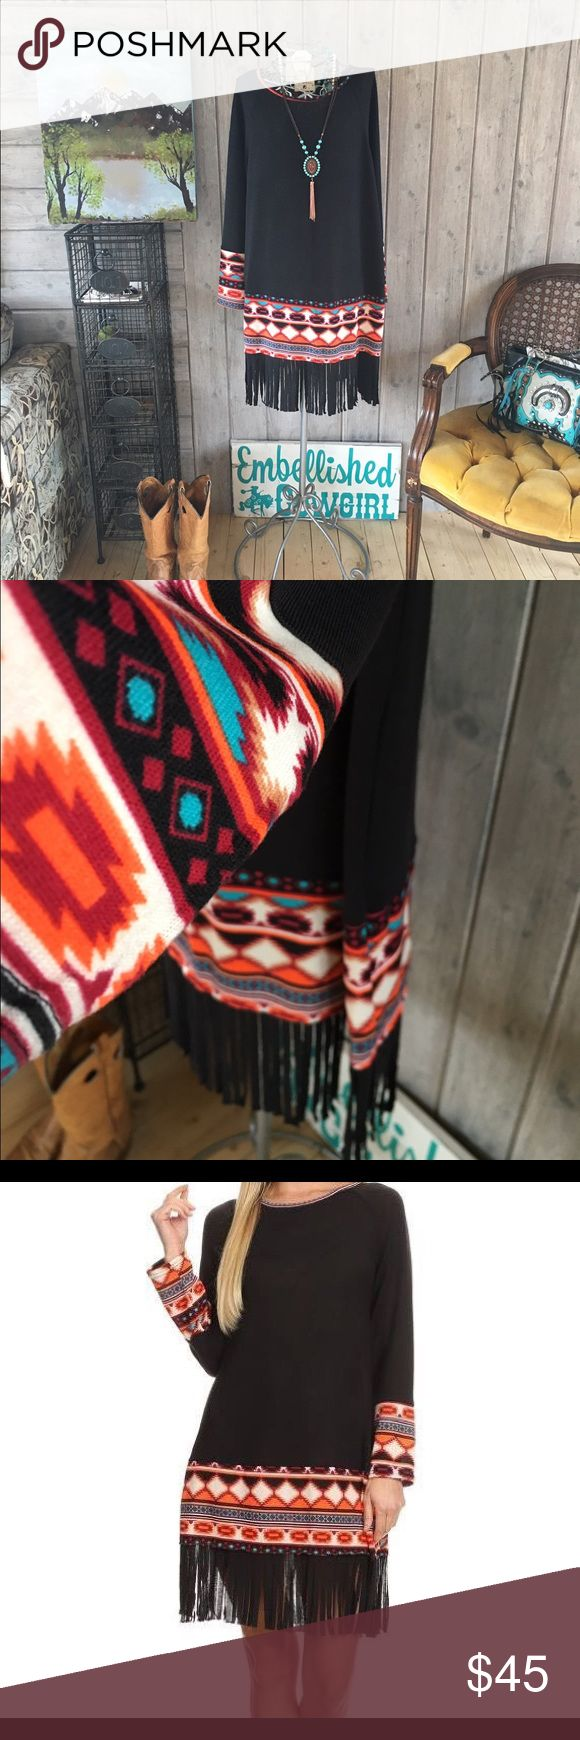 Cowgirl fringe print dress woman and plus sizes Cowgirl dress black with fringe fits true and roomy spandex blend poly. Super cute as dress to tunic with leggings and boots. Email man and plus sizes available.  Dresses